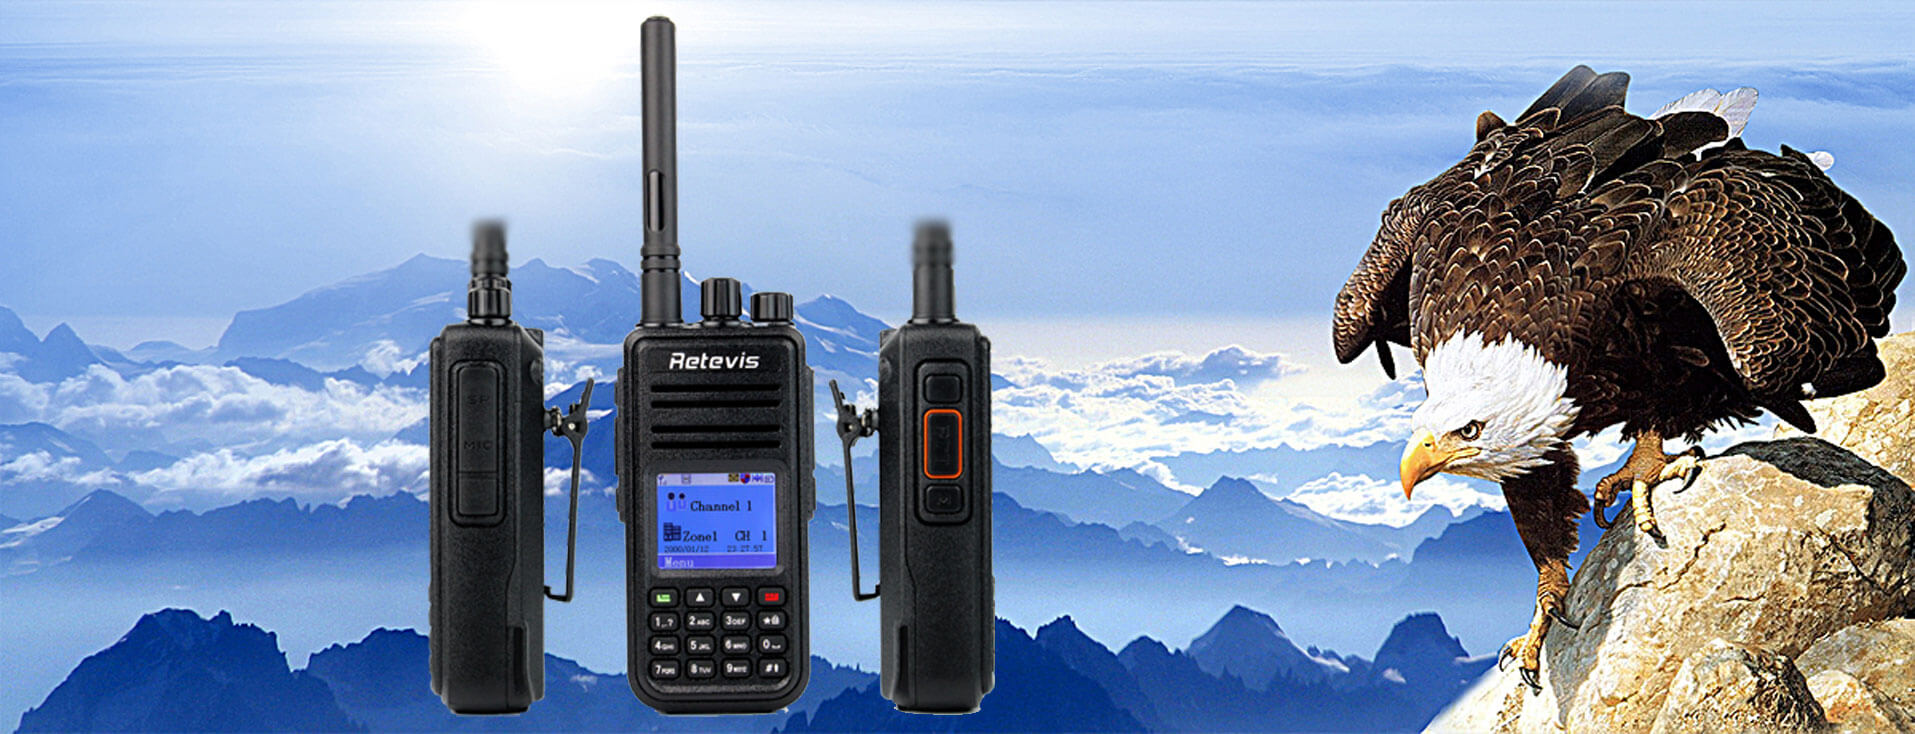 RT3 + MD380 Tools Firmware,Give you a different DMR radio